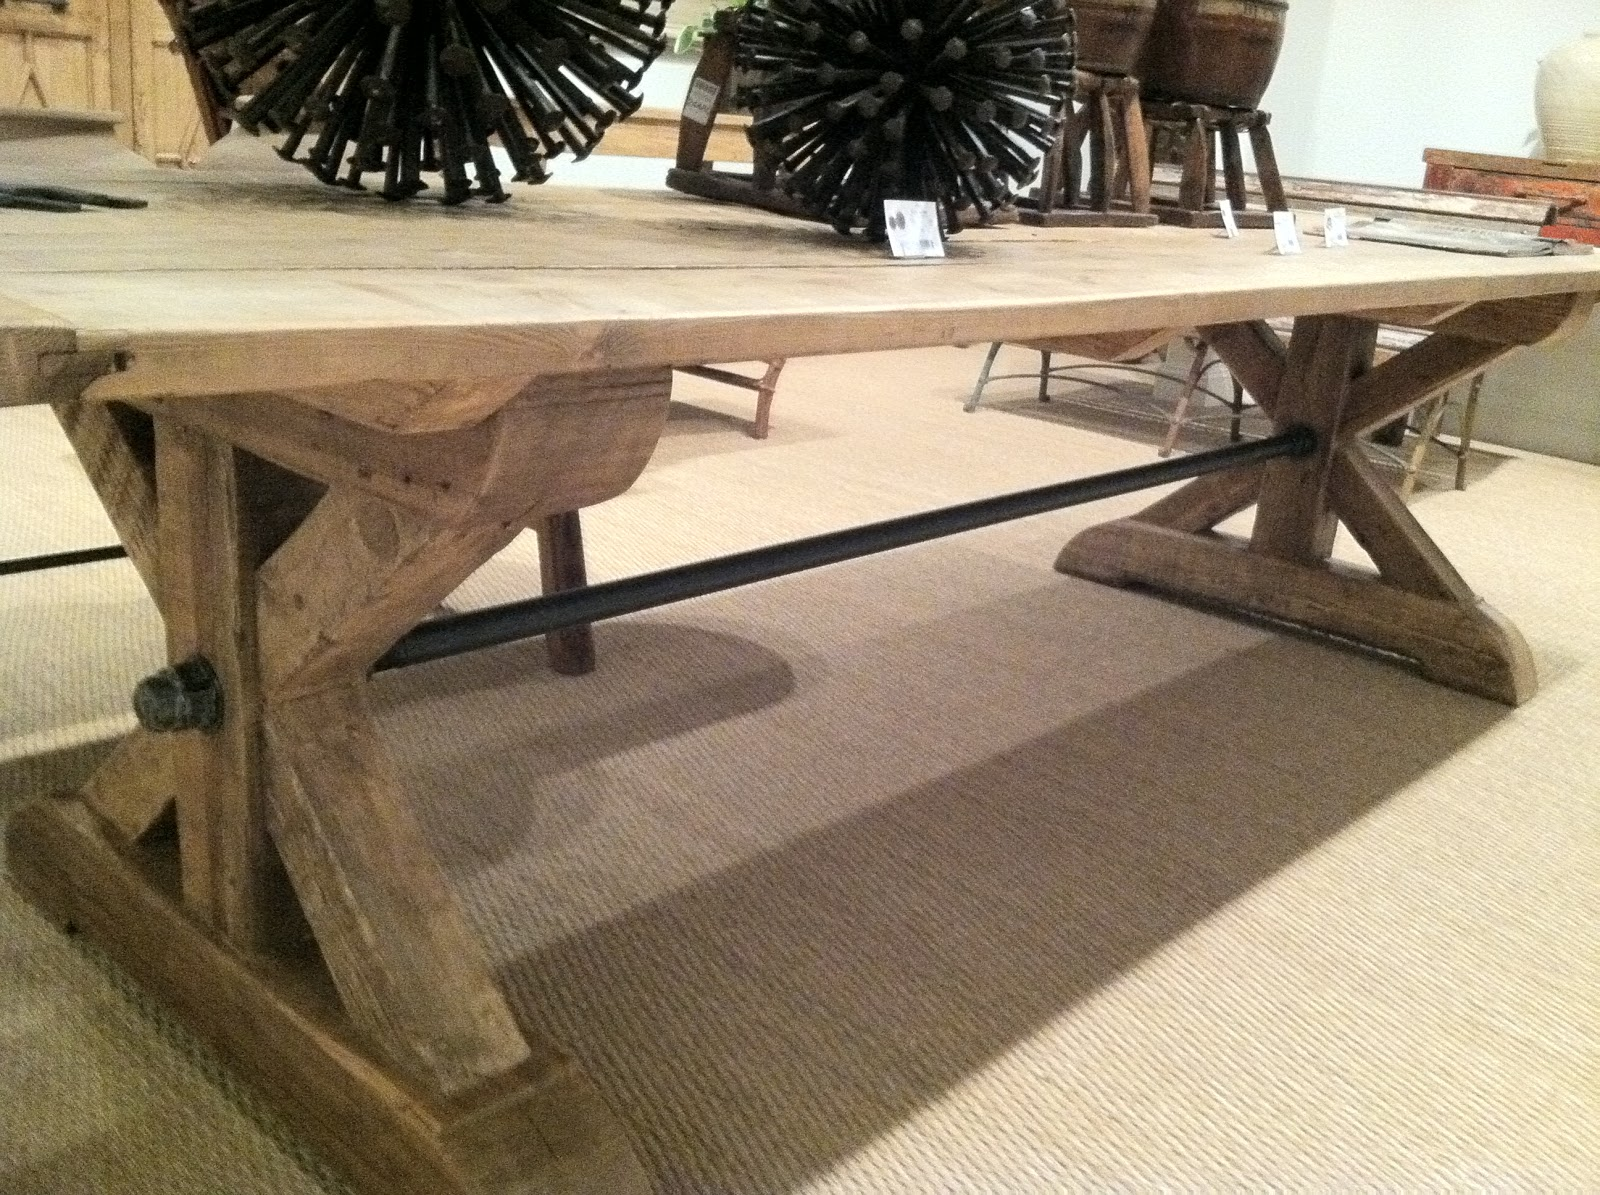 Dining tables gerrit industrial style rustic pine iron dining table - Rustic Dining Table Rustic Dining Room Tables Rustic Wood Dining Vintage Wild Orchid We Love Farmtables